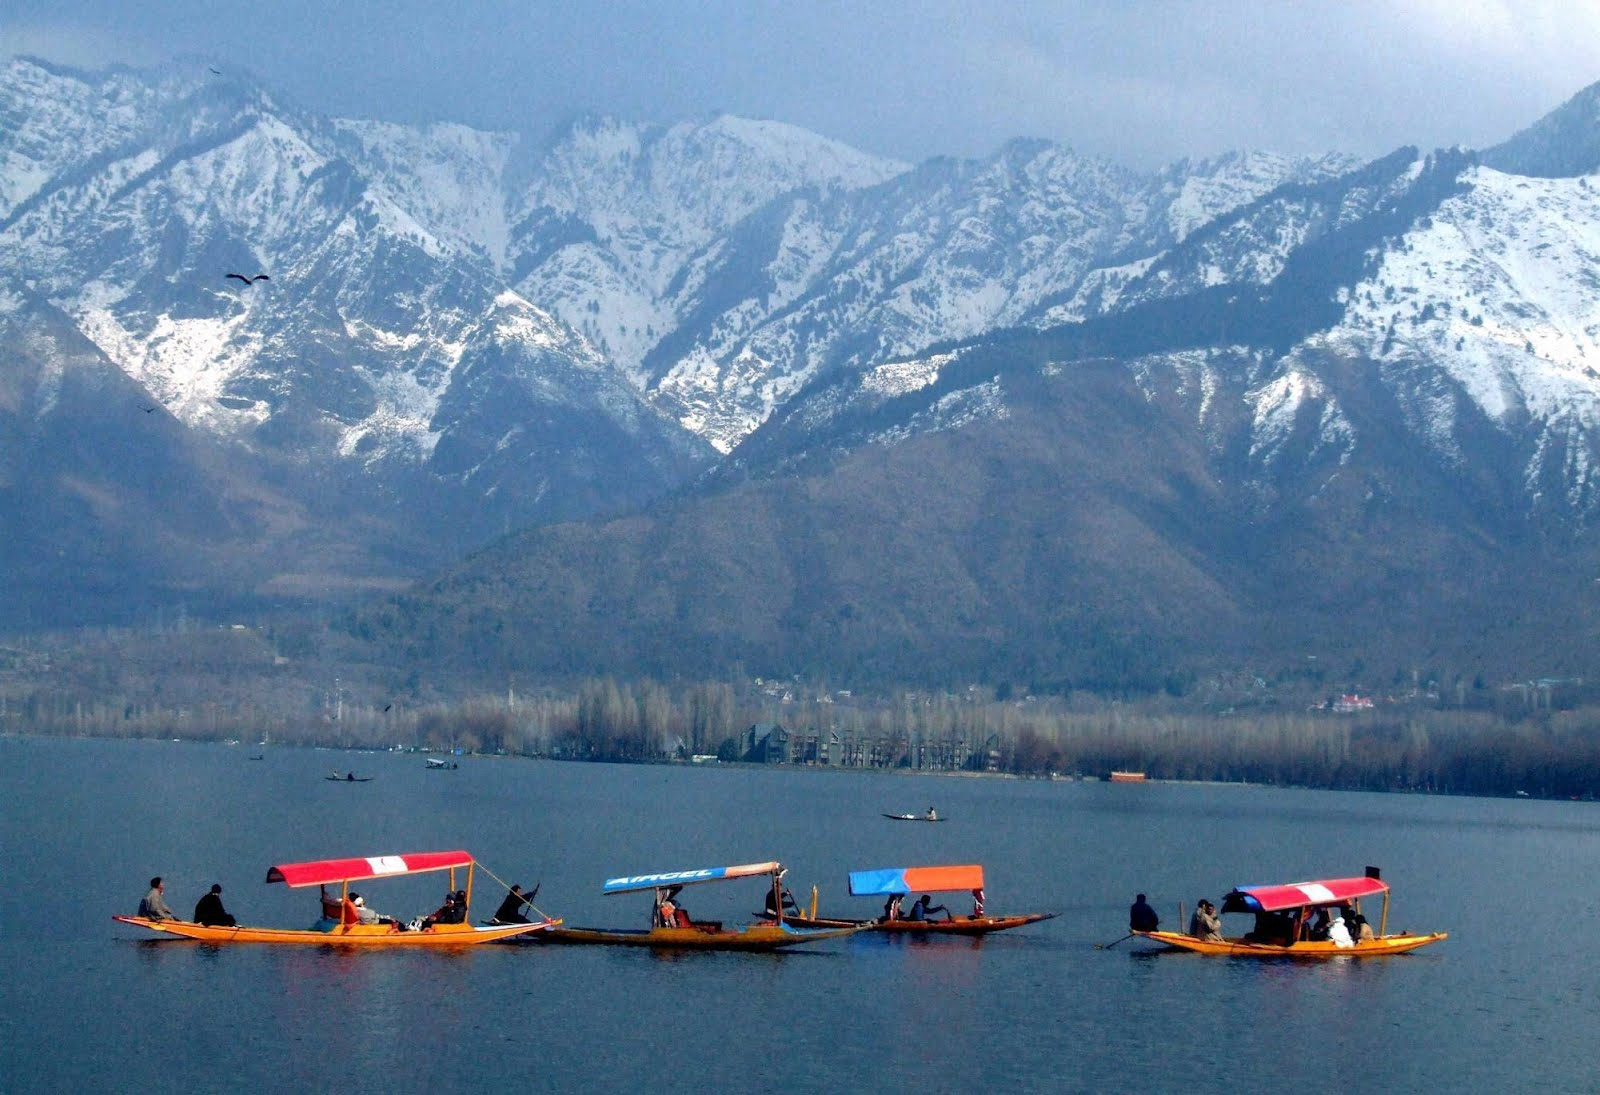 The scenic beauty of Dal Lake